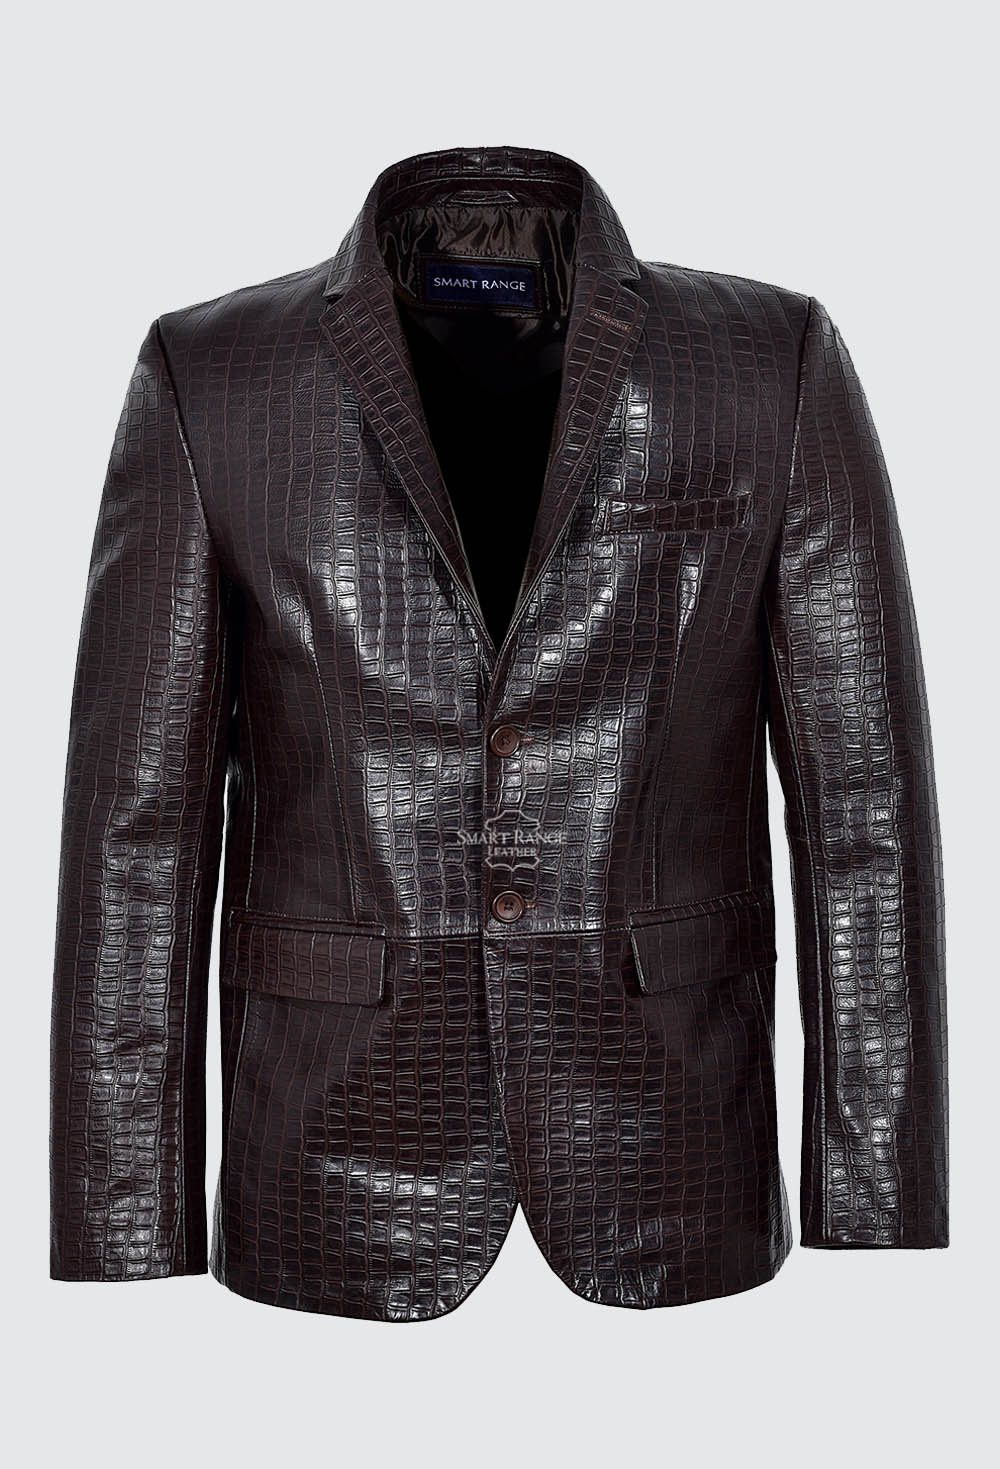 Mens leather blazer, Leather coats for men, Classic leather coats